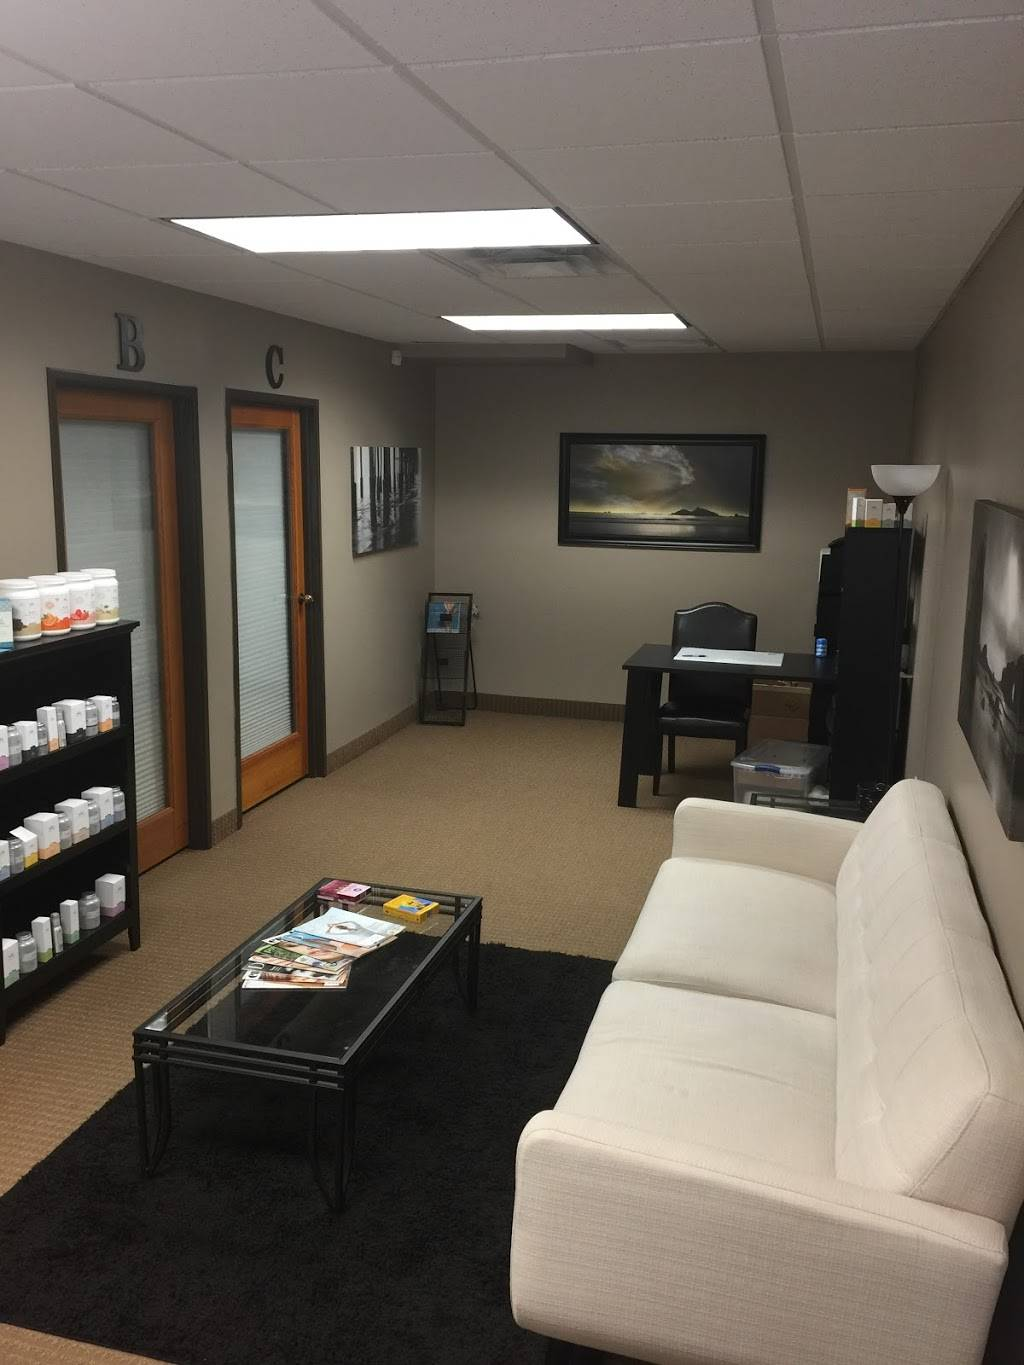 True Life Chiropractic - health  | Photo 6 of 7 | Address: 13780 E Rice Pl Suite 114, Aurora, CO 80015, USA | Phone: (940) 293-5507